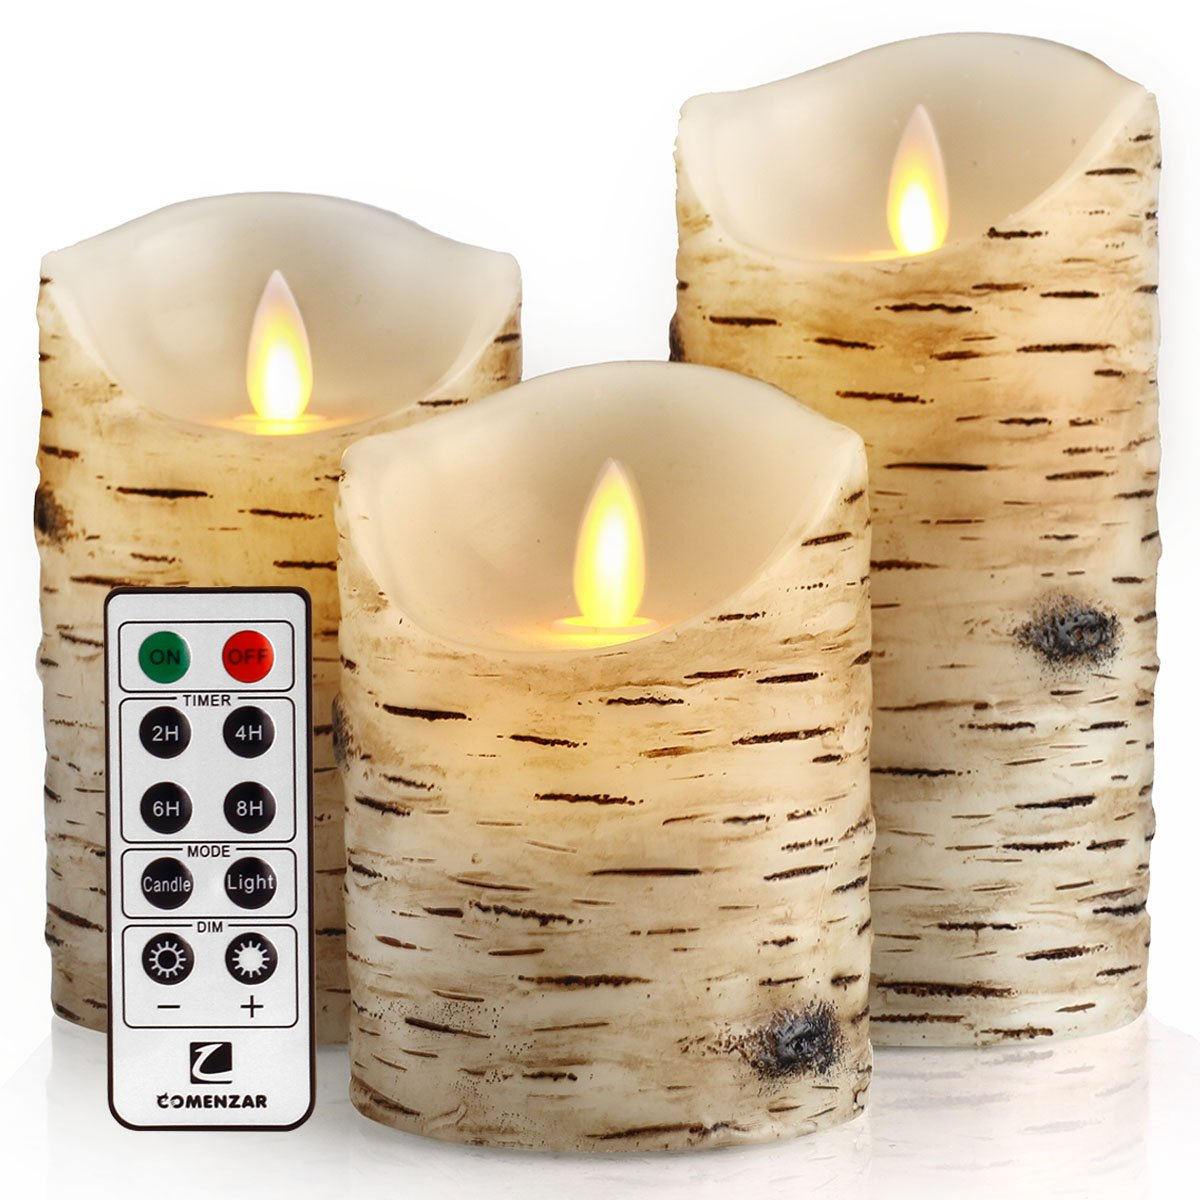 comenzar Flickering Candles, Candles Birch Set of 4 5'' 6'' Birch Bark Battery Candles Real Wax Pillar with Remote Timer